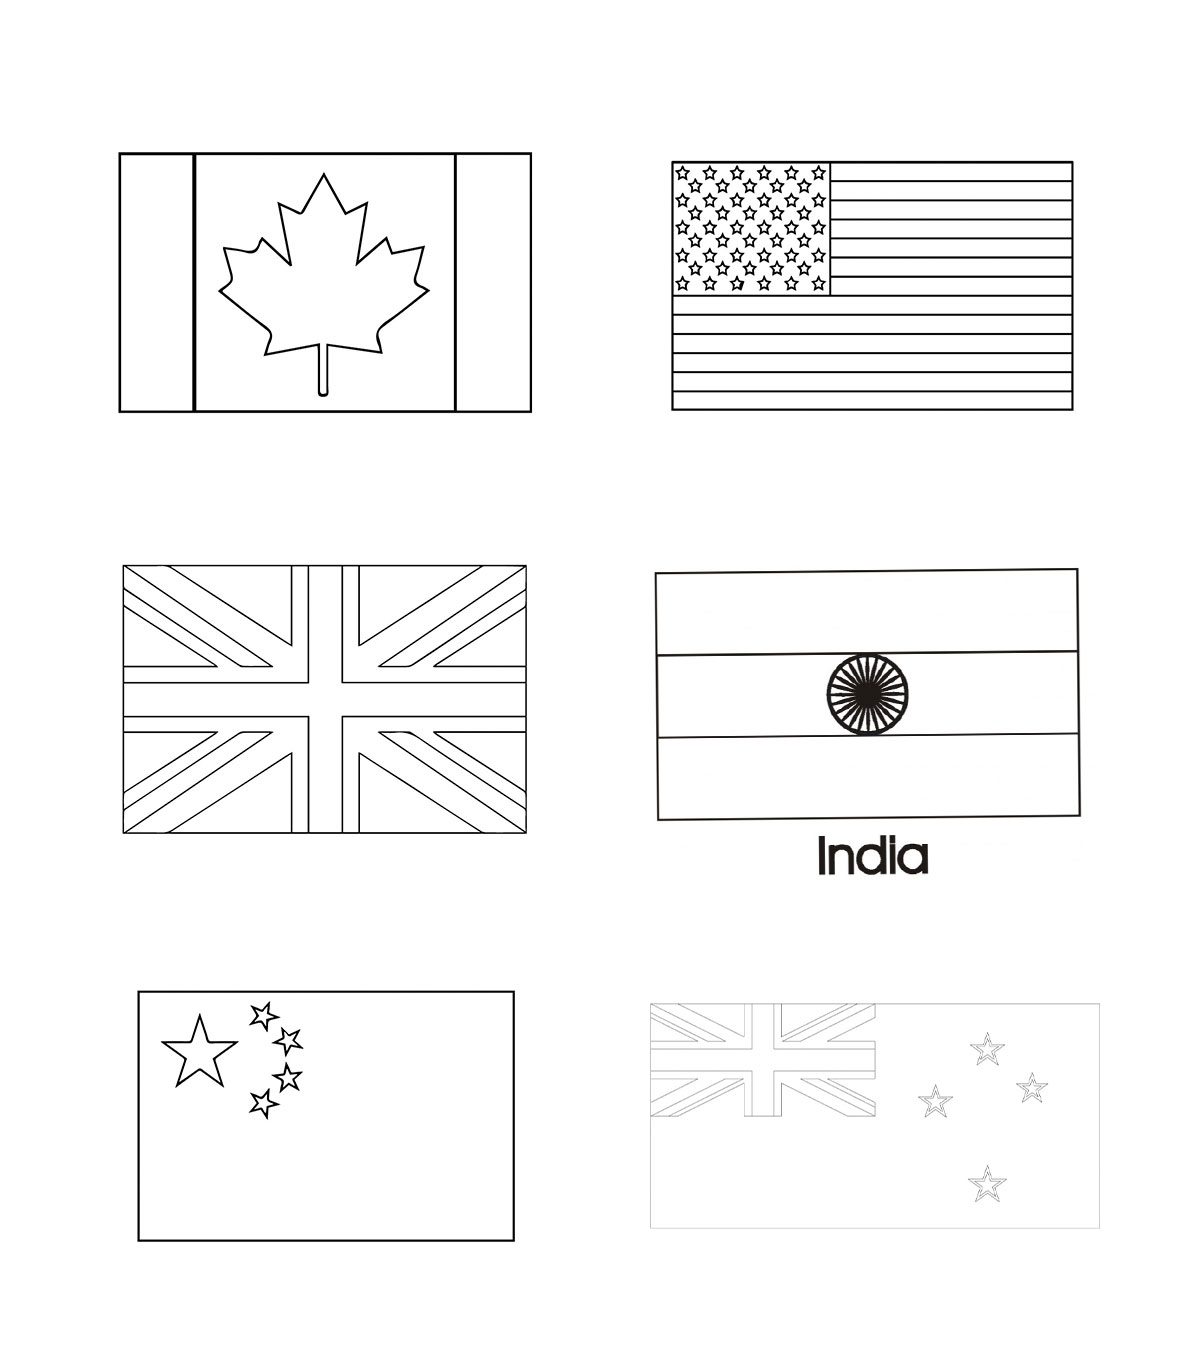 - Top 10 Free Printable Country And World Flags Coloring Pages Online